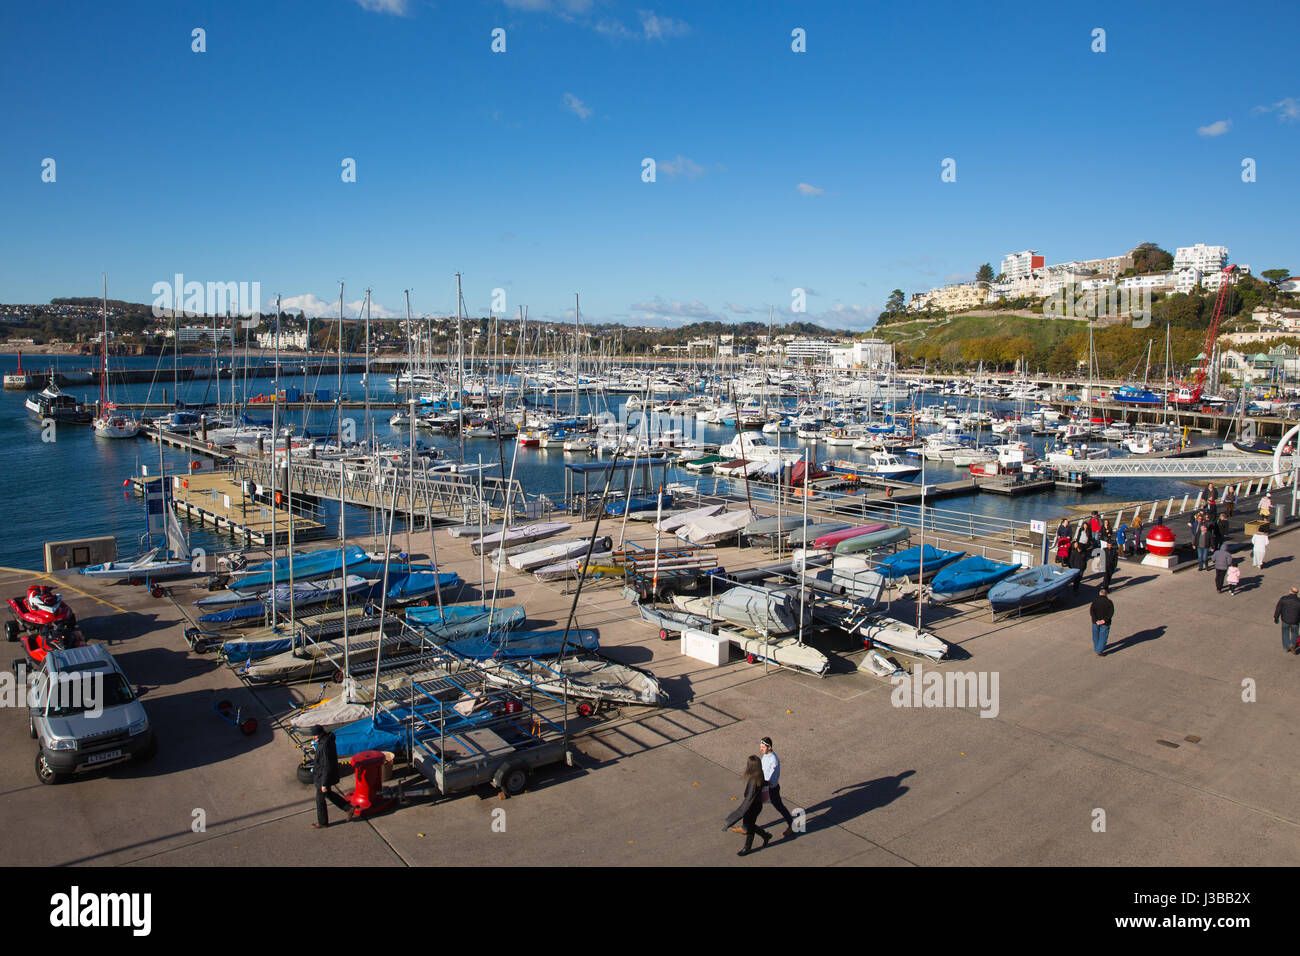 Torquay Devon marina with boats and yachts on beautiful day on the English Riviera - Stock Image